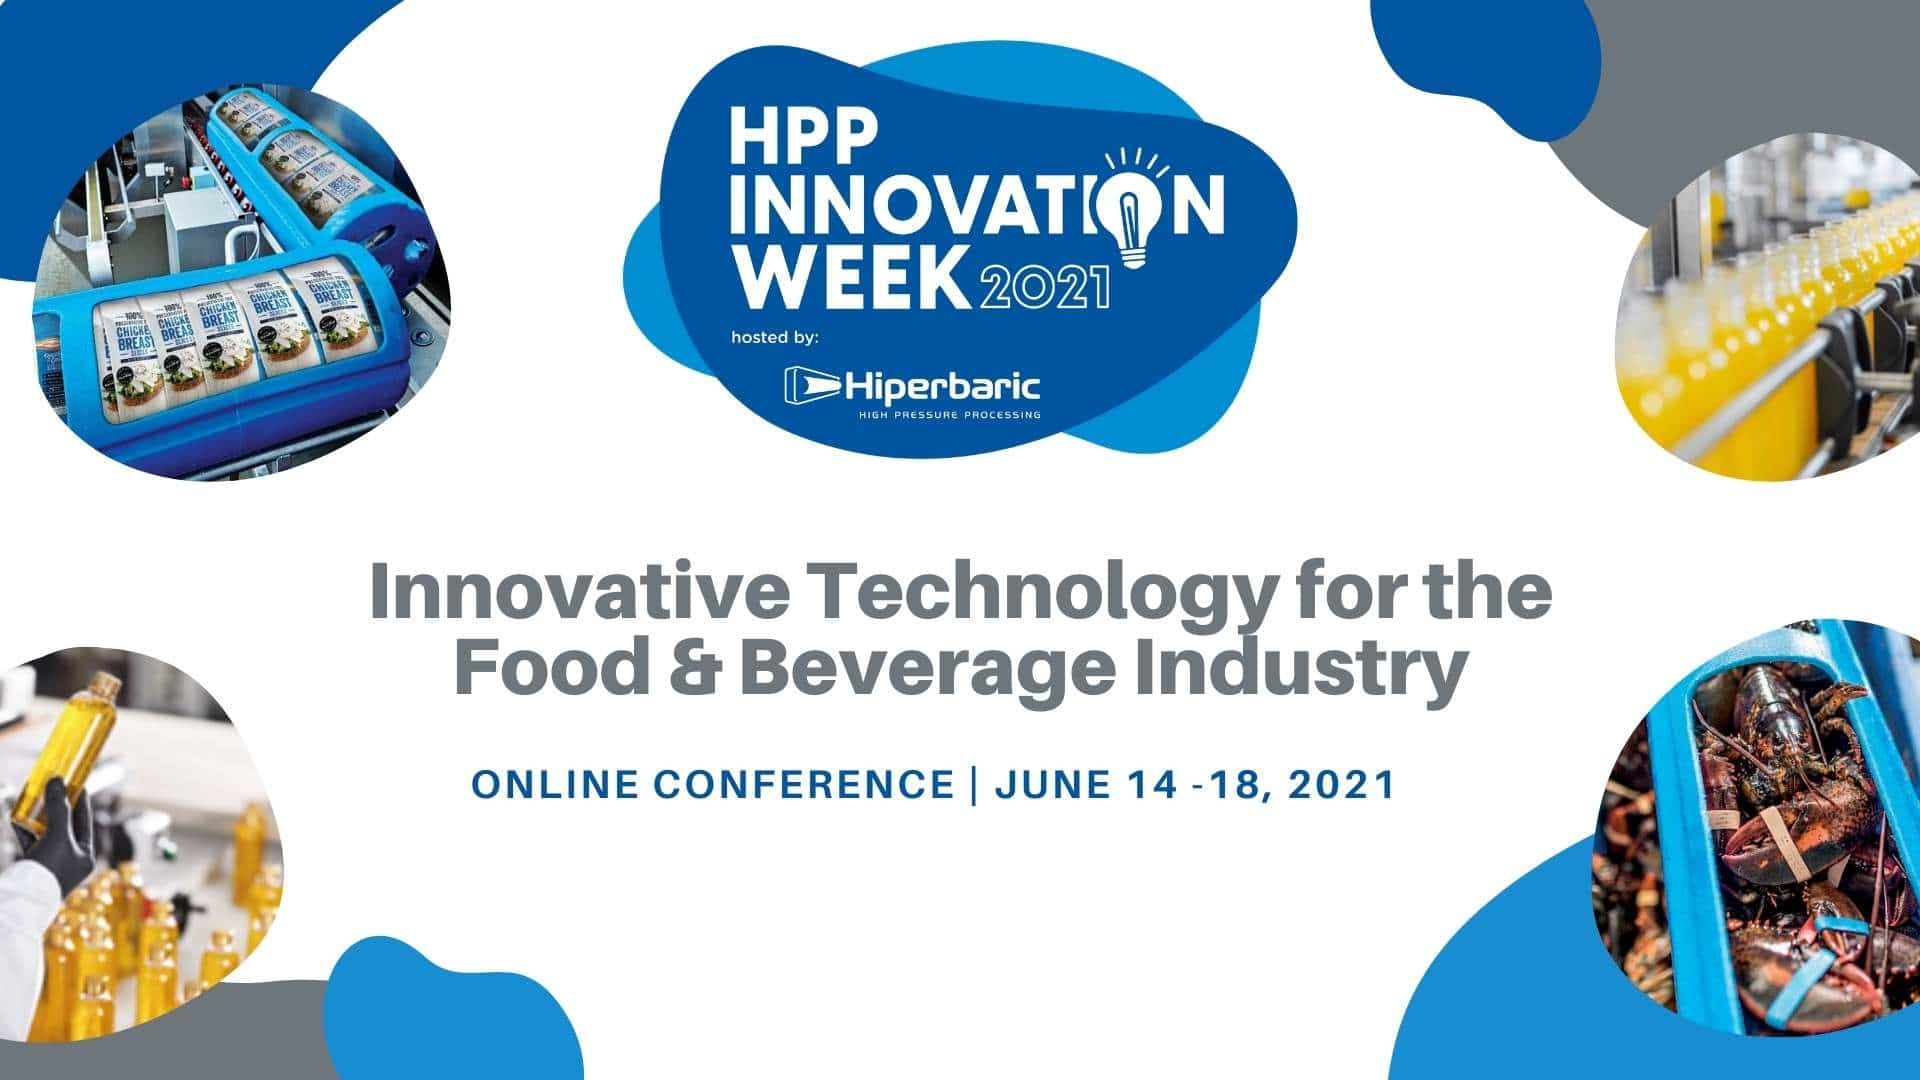 HPP Innovation Week 2021